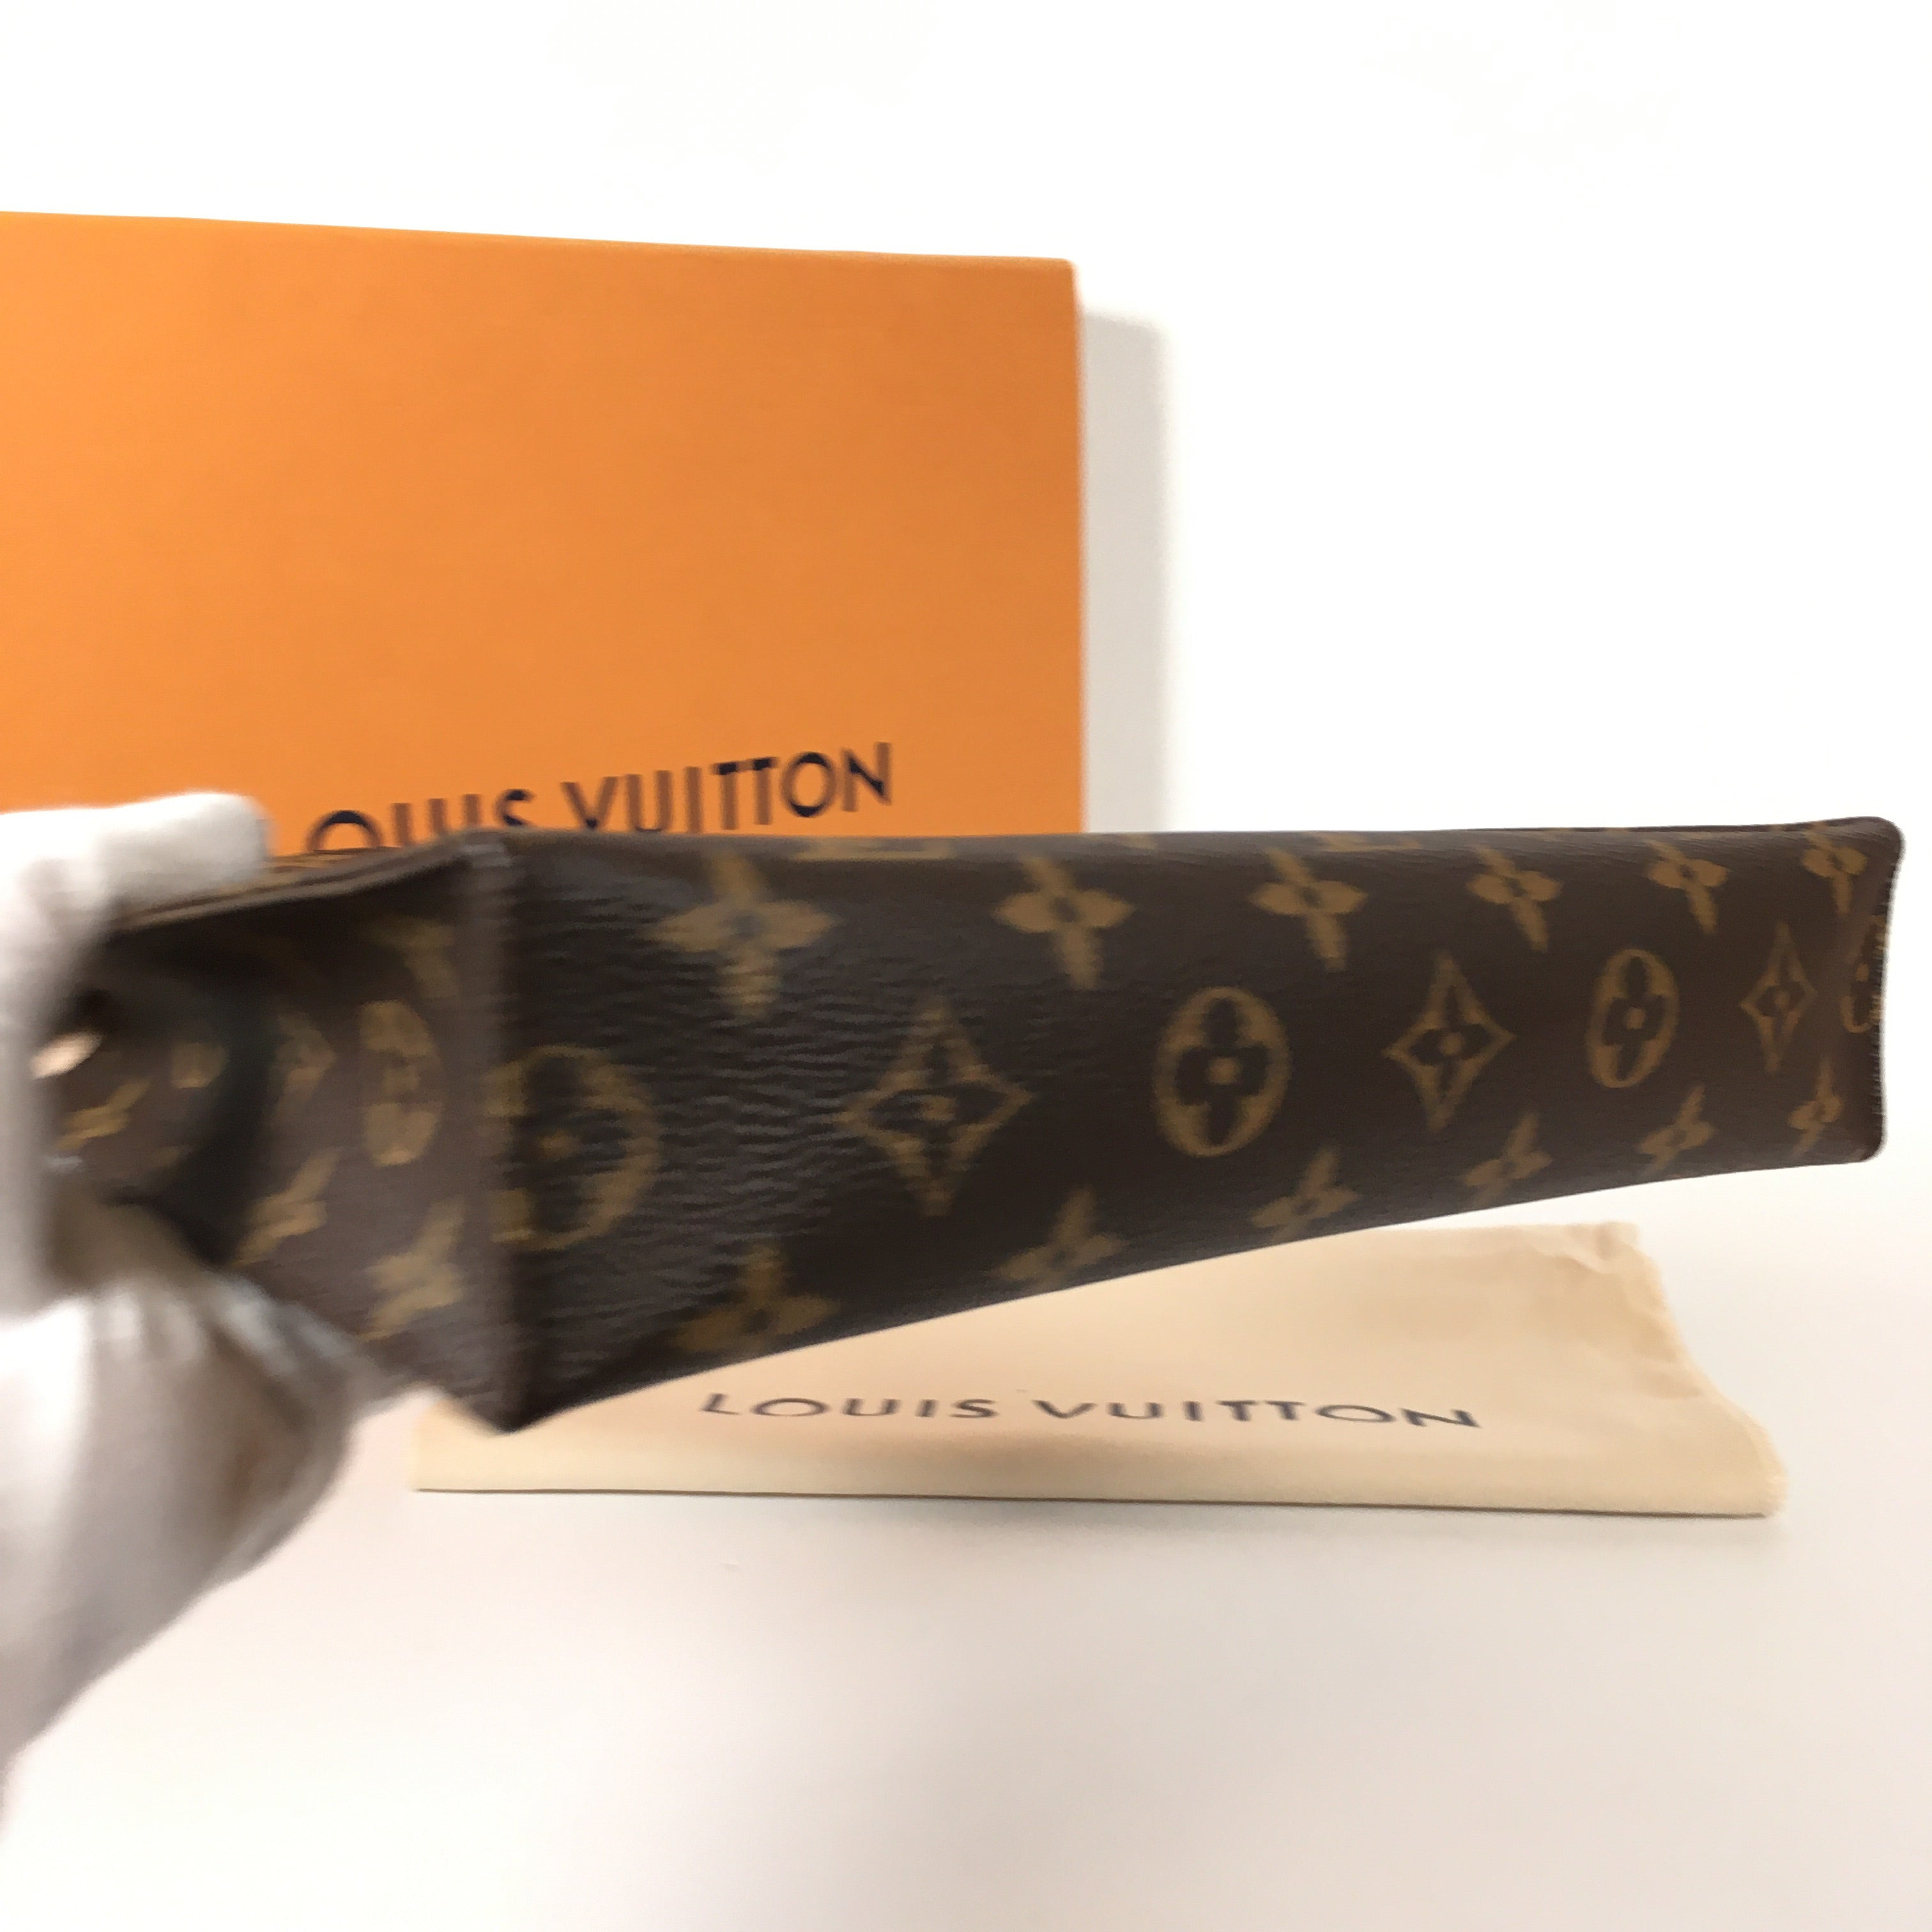 Louis Vuitton Toiletry